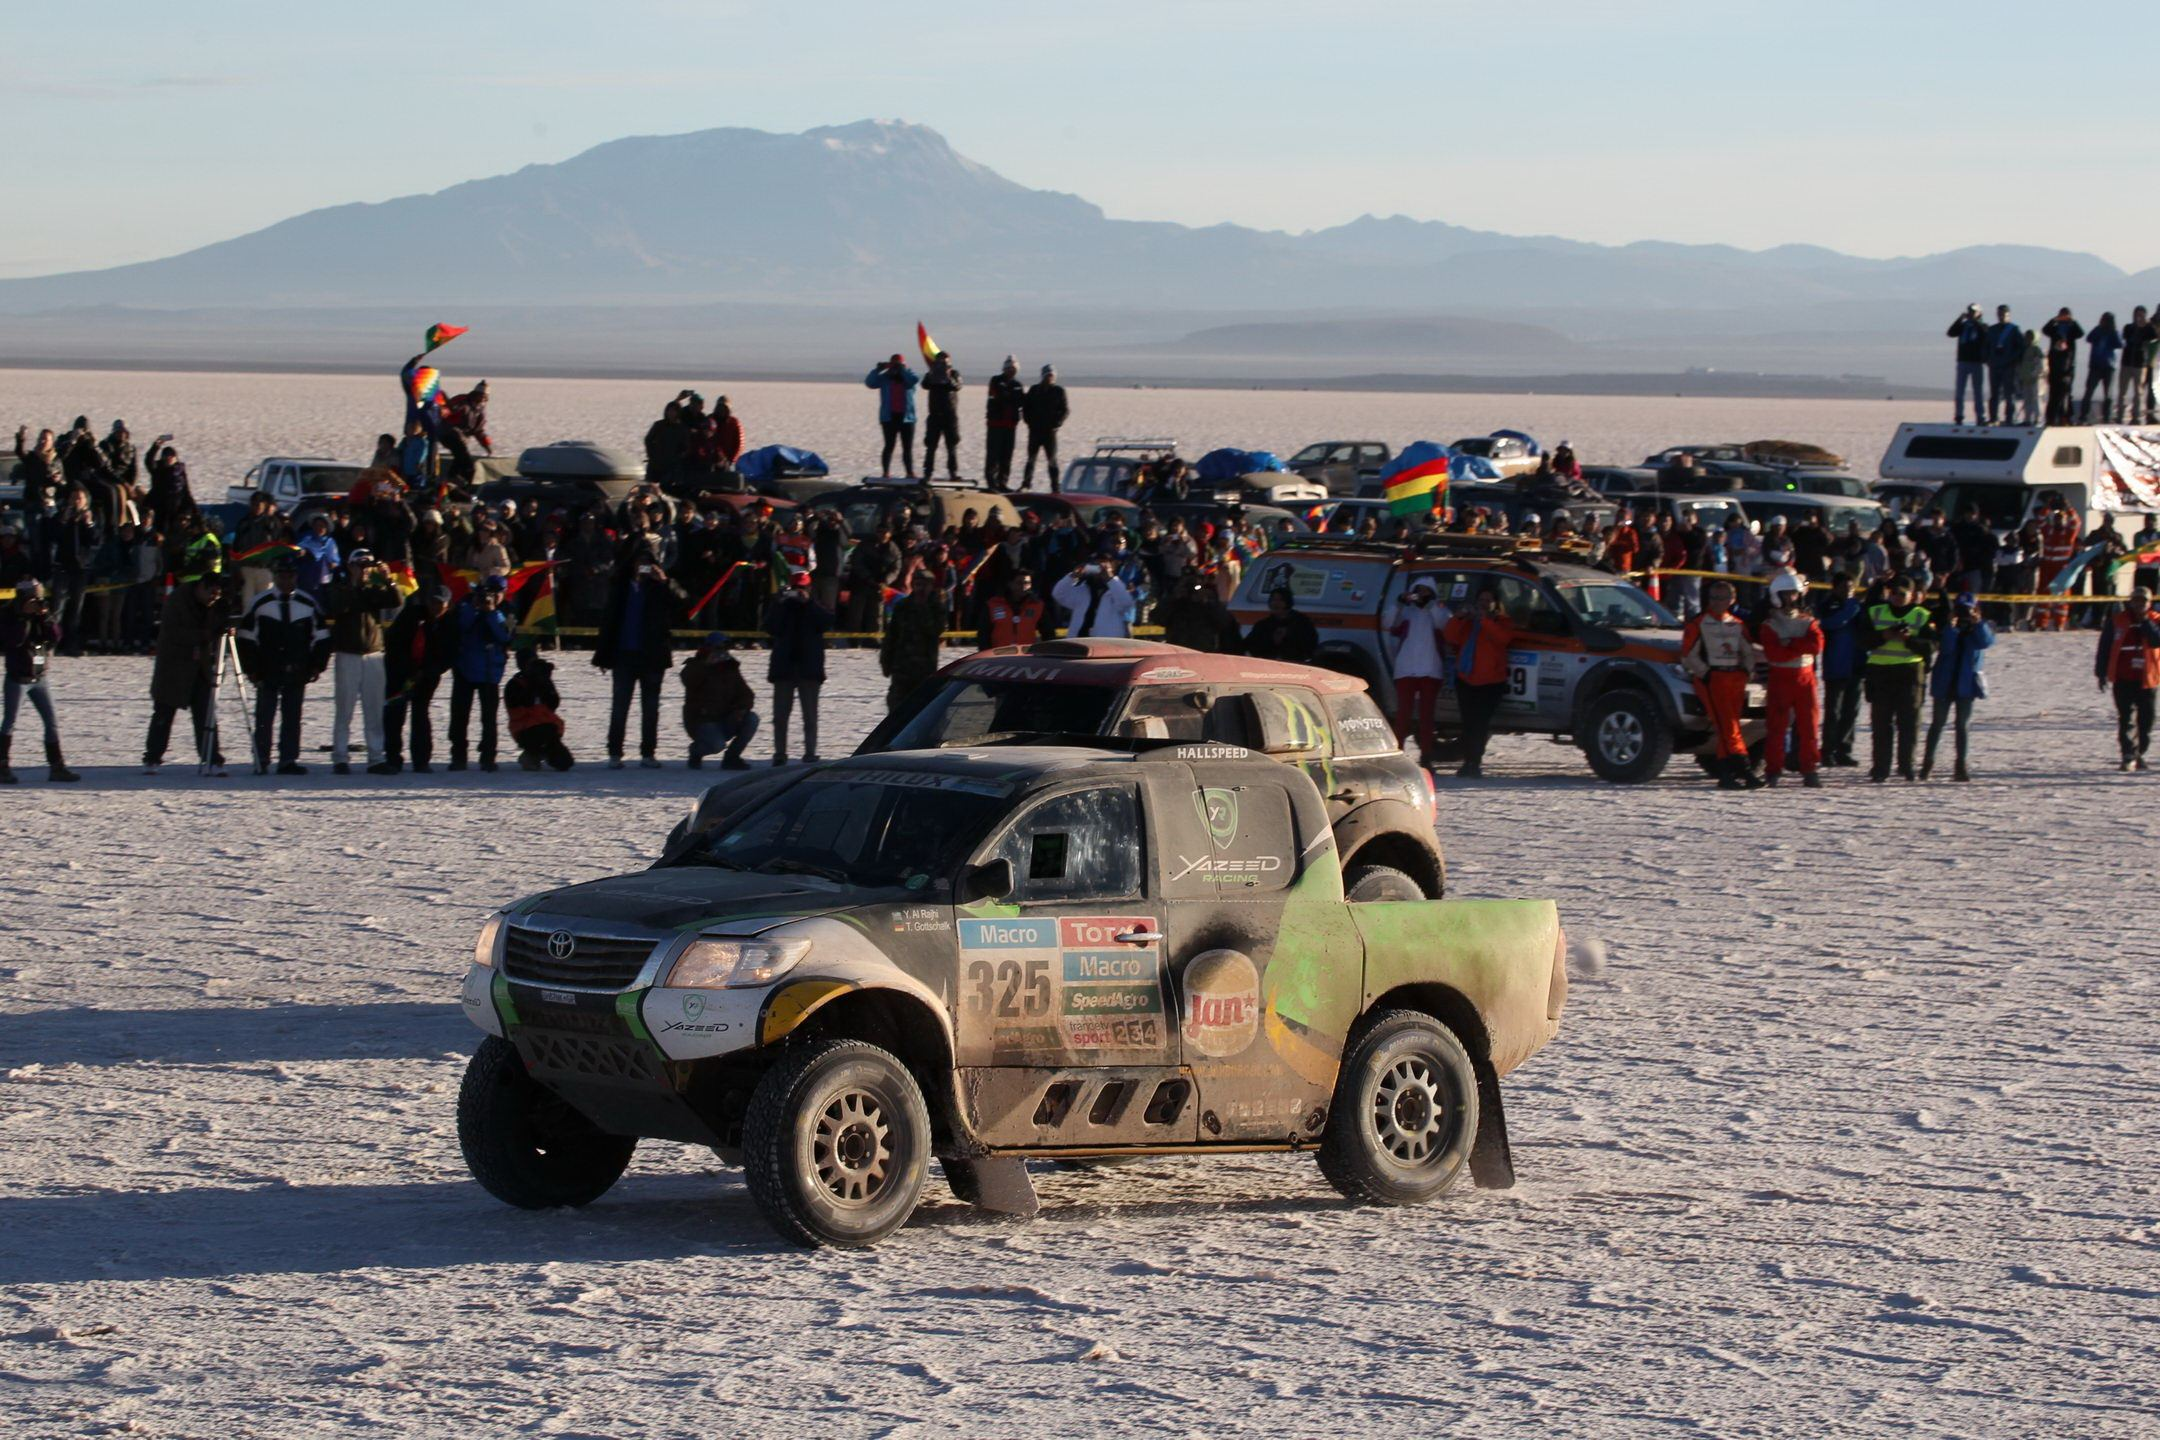 Yazeed and the Hilux Returned from Bolivia with the First Victory in the Auto Category for a Toyota Vehicle.